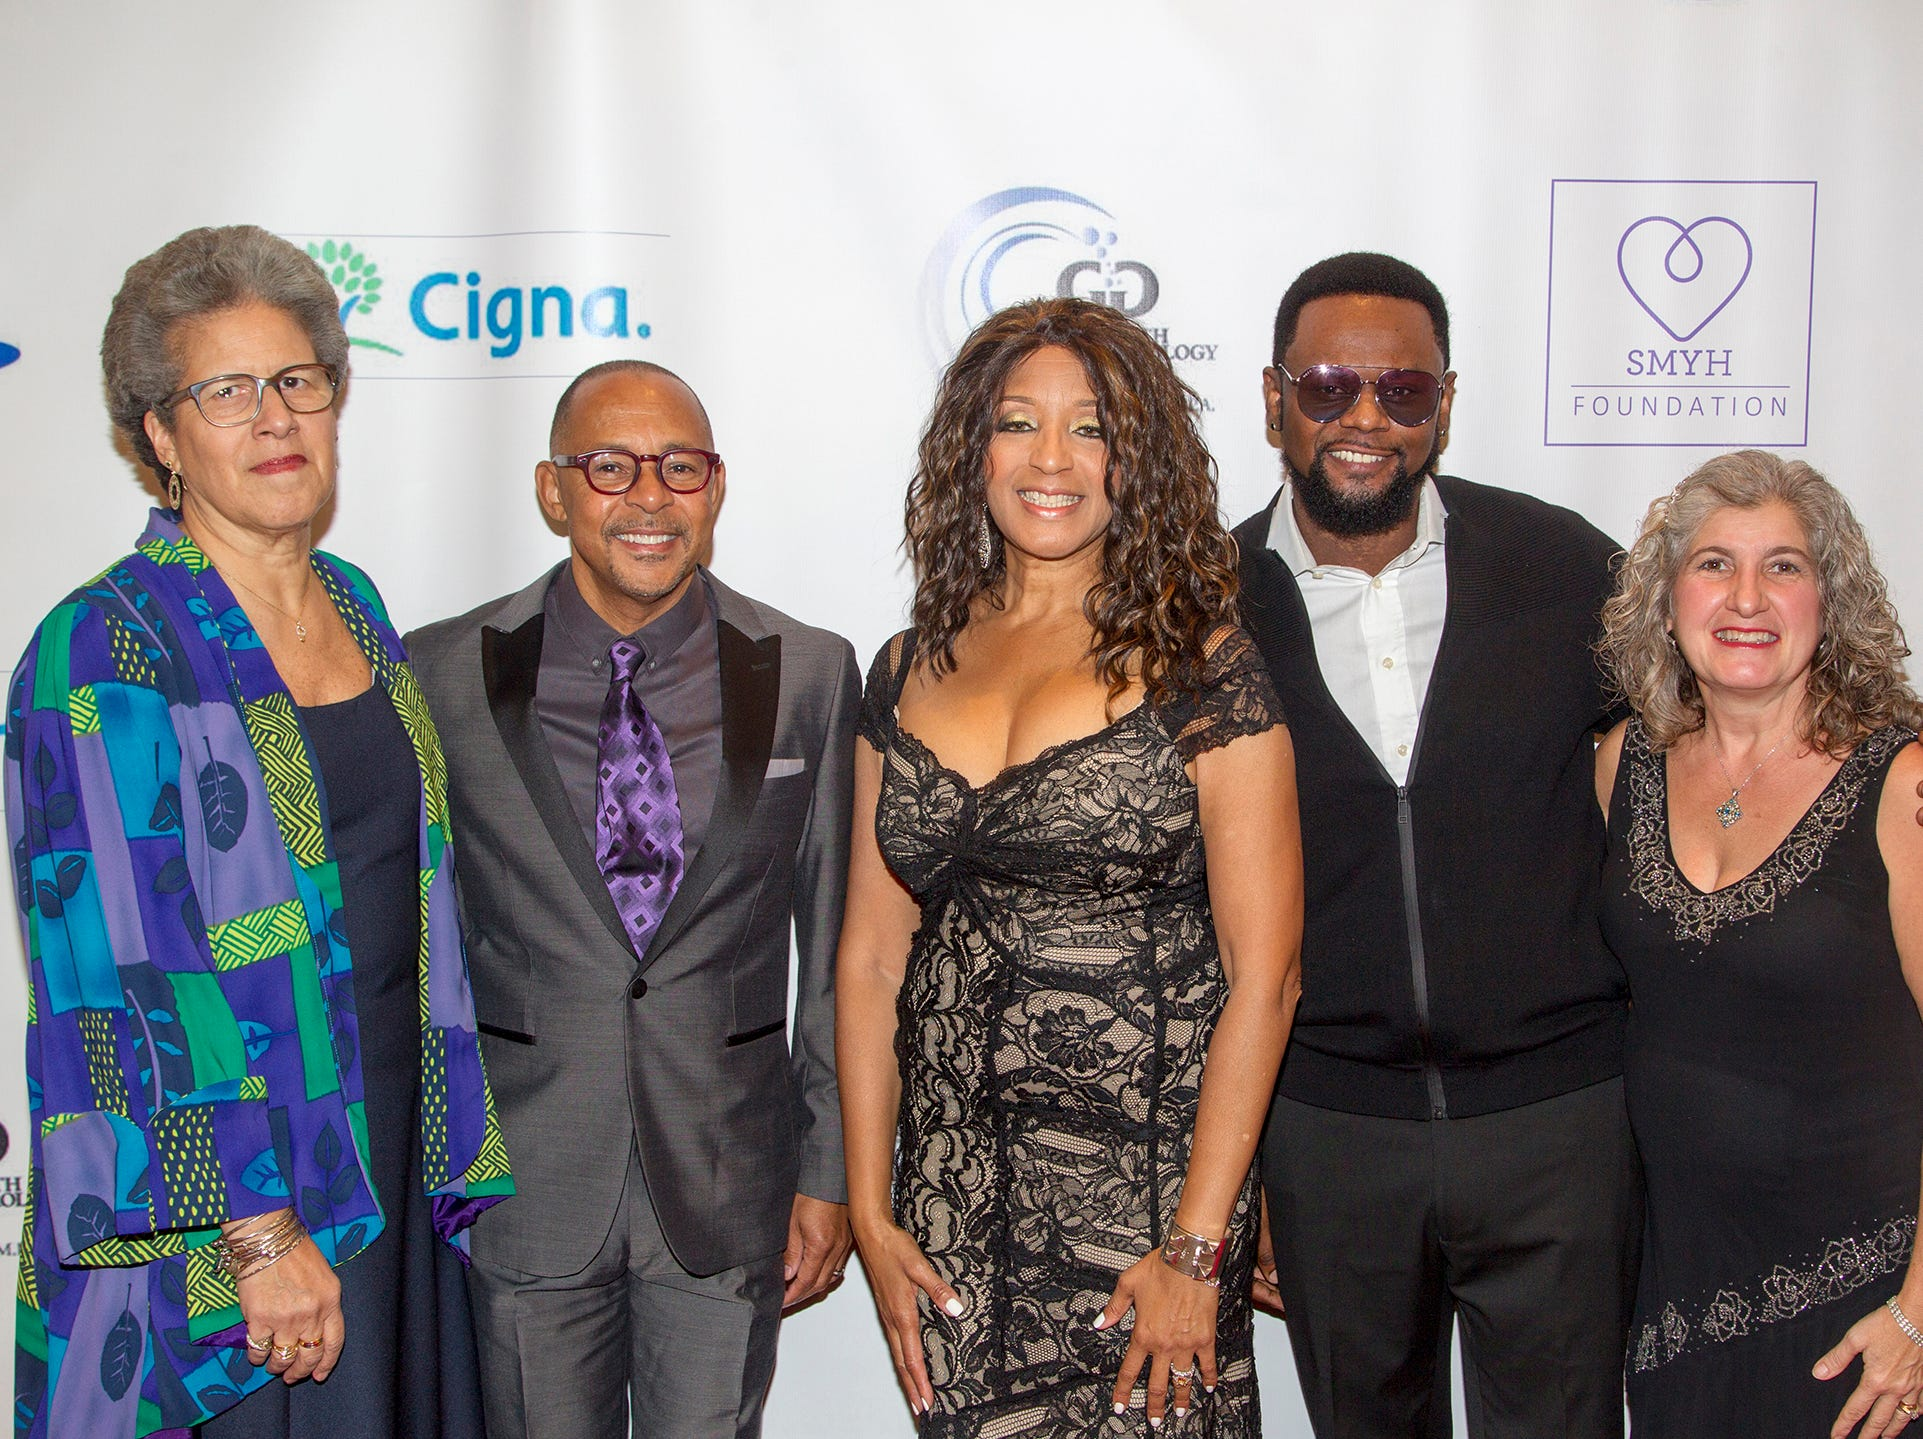 Evelyn Graves, Dr. Jeff Gardere, Dr. Sharon Banks-Williams, Entertainer Carl Thomas and Dr. Vasiliki Tsigas- Fotinis. Foundation holds 16th annual Scholarship Awards Gala in Teaneck. 11/09/2018